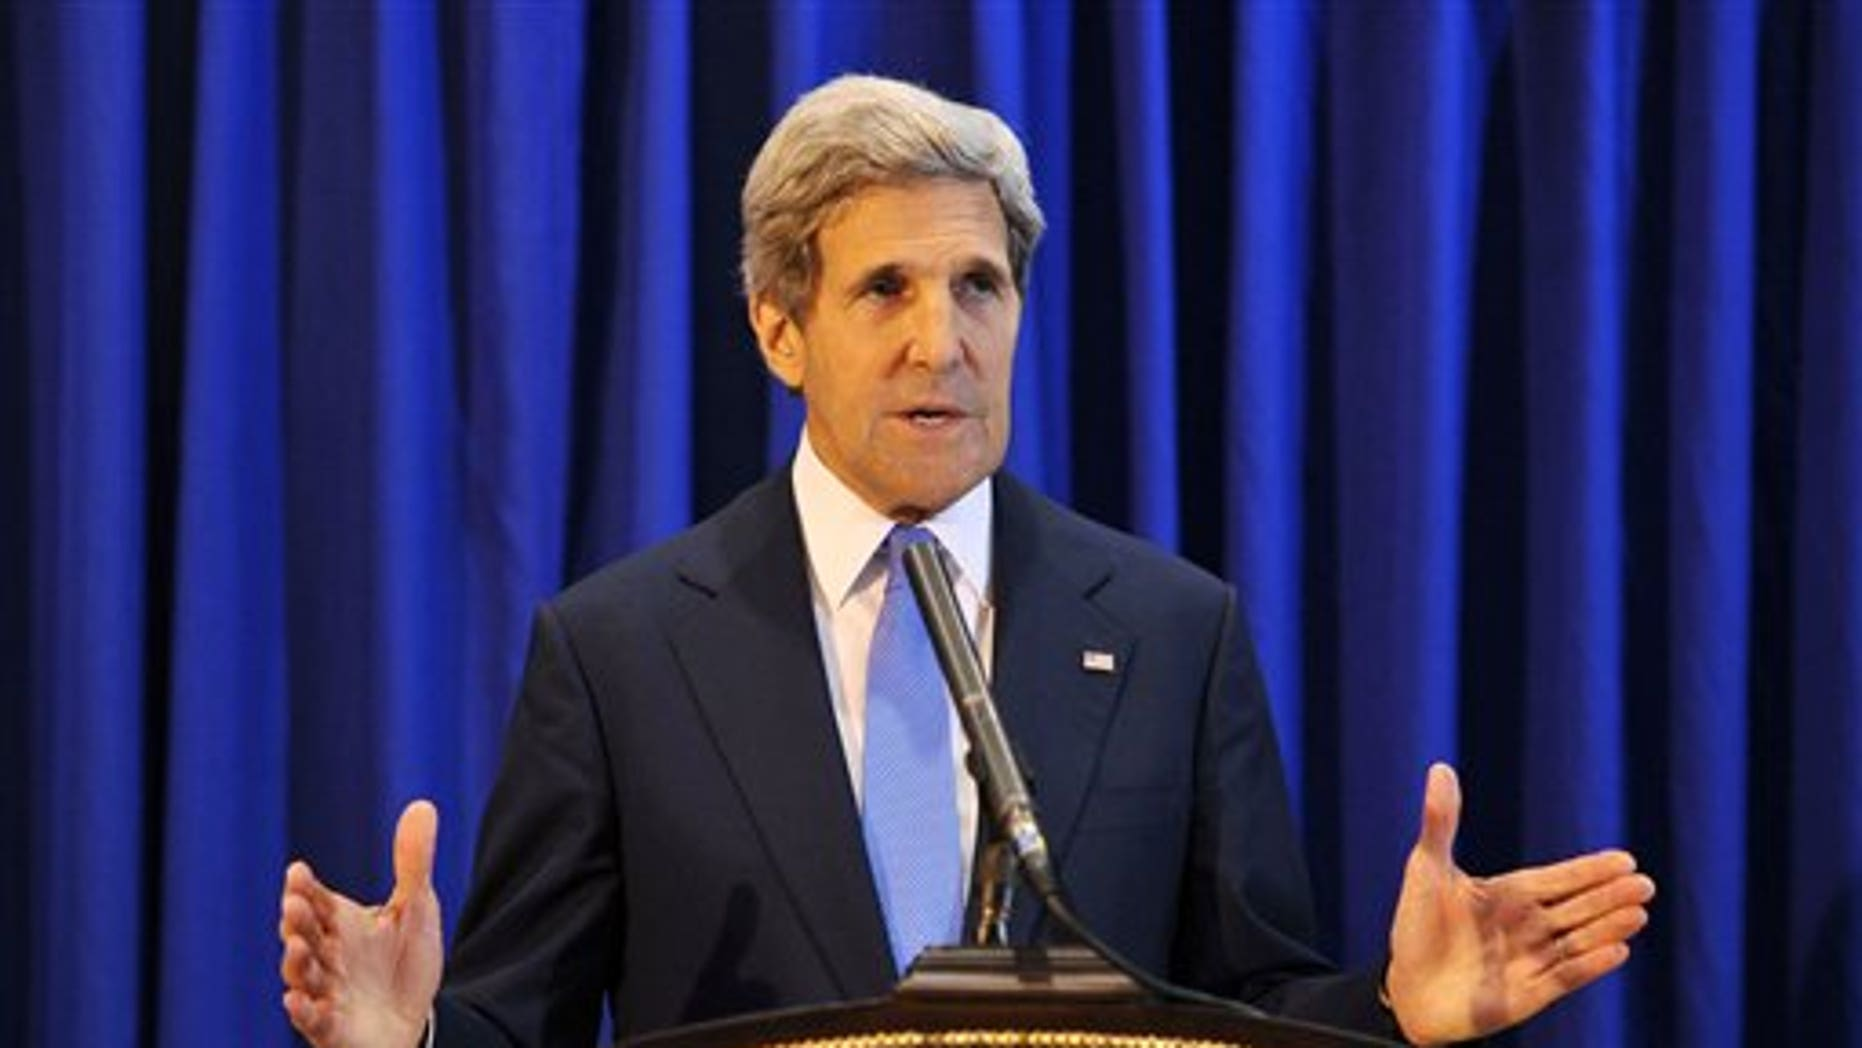 July 19, 2013 - U.S. Secretary of State John Kerry speaks during a press conference at Queen Alia International Airport. Kerry says Israel and the Palestinians will meet soon in Washington to finalize an agreement on relaunching peace negotiations for the first time in five years.